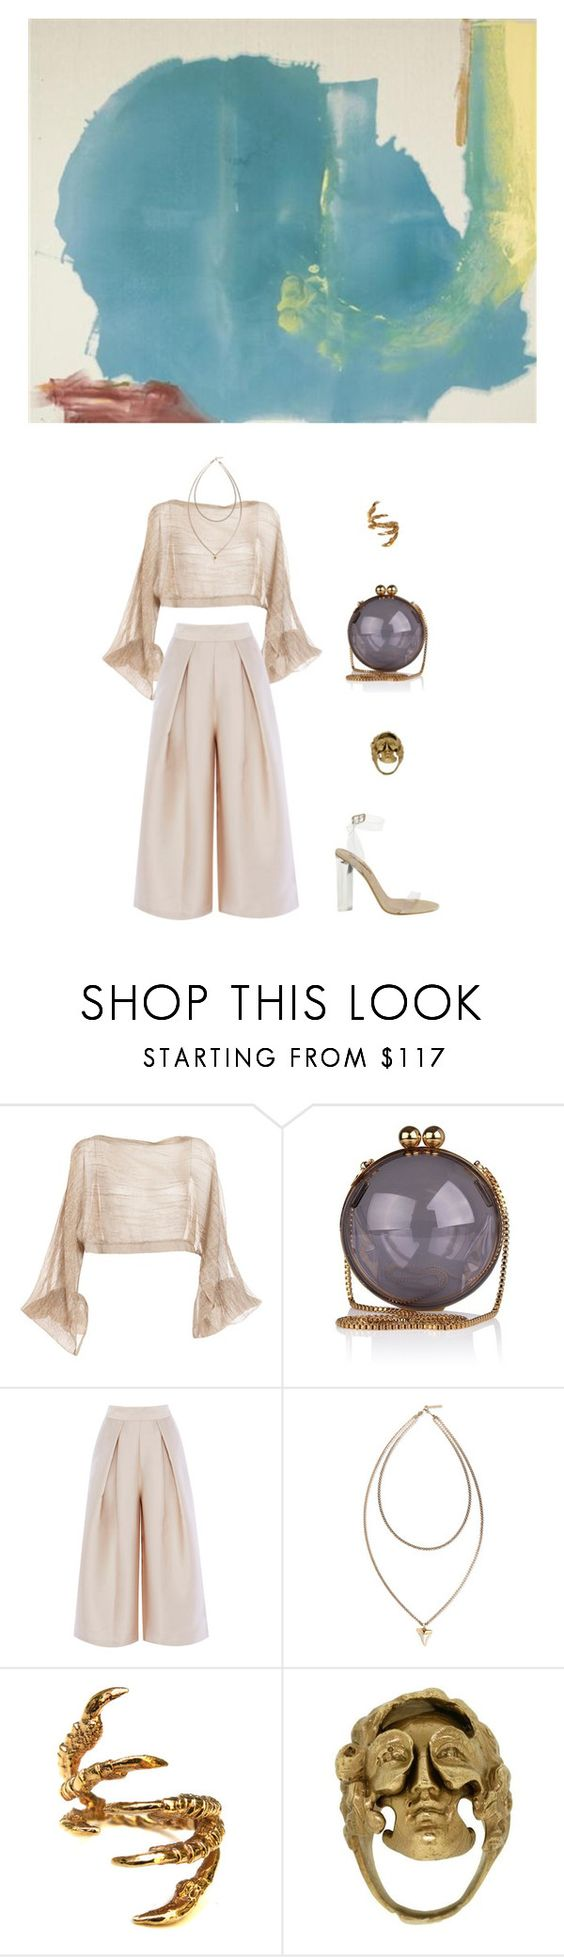 """""""Where Necessary"""" by oneweirdtrick ❤ liked on Polyvore featuring DAMIR DOMA, Givenchy, YEEZY Season 2, Tessa Metcalfe and Yunus & Eliza"""